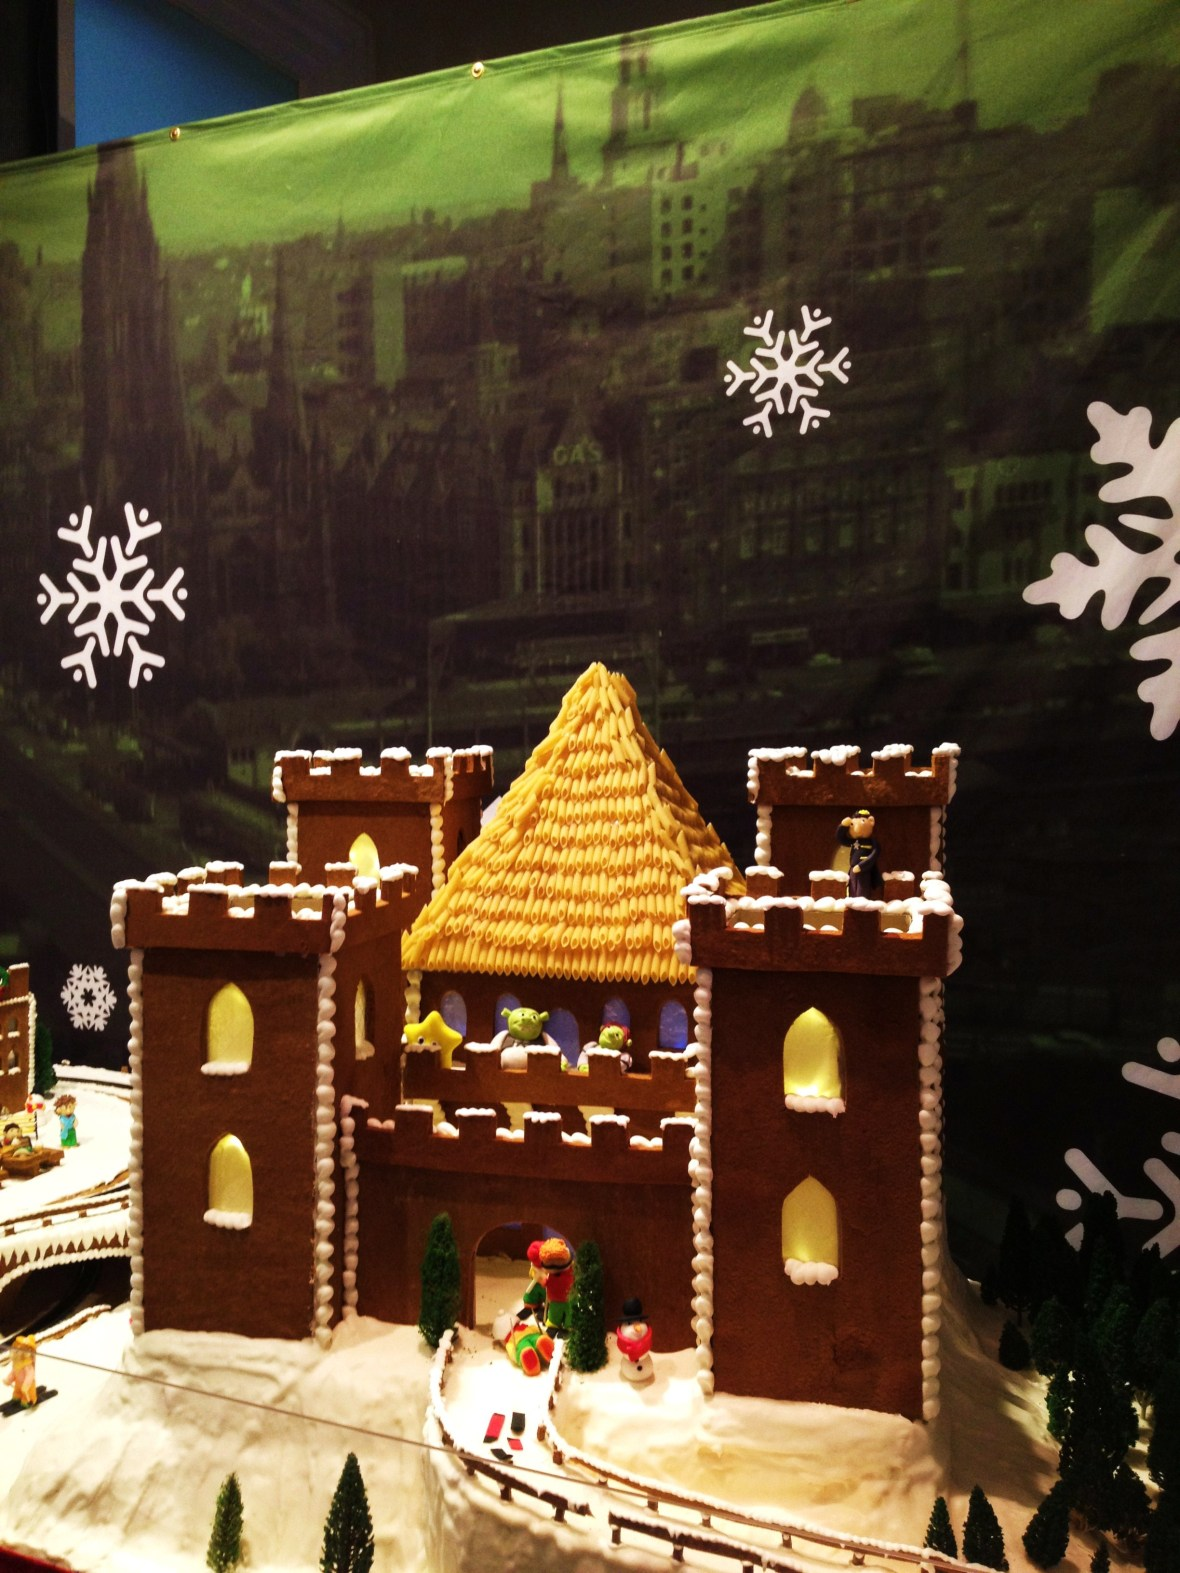 """Gingerbread Village by Epicure at the Melbourne Town Hall, December 2012 - the """"Shrek Fairytale Castle"""""""